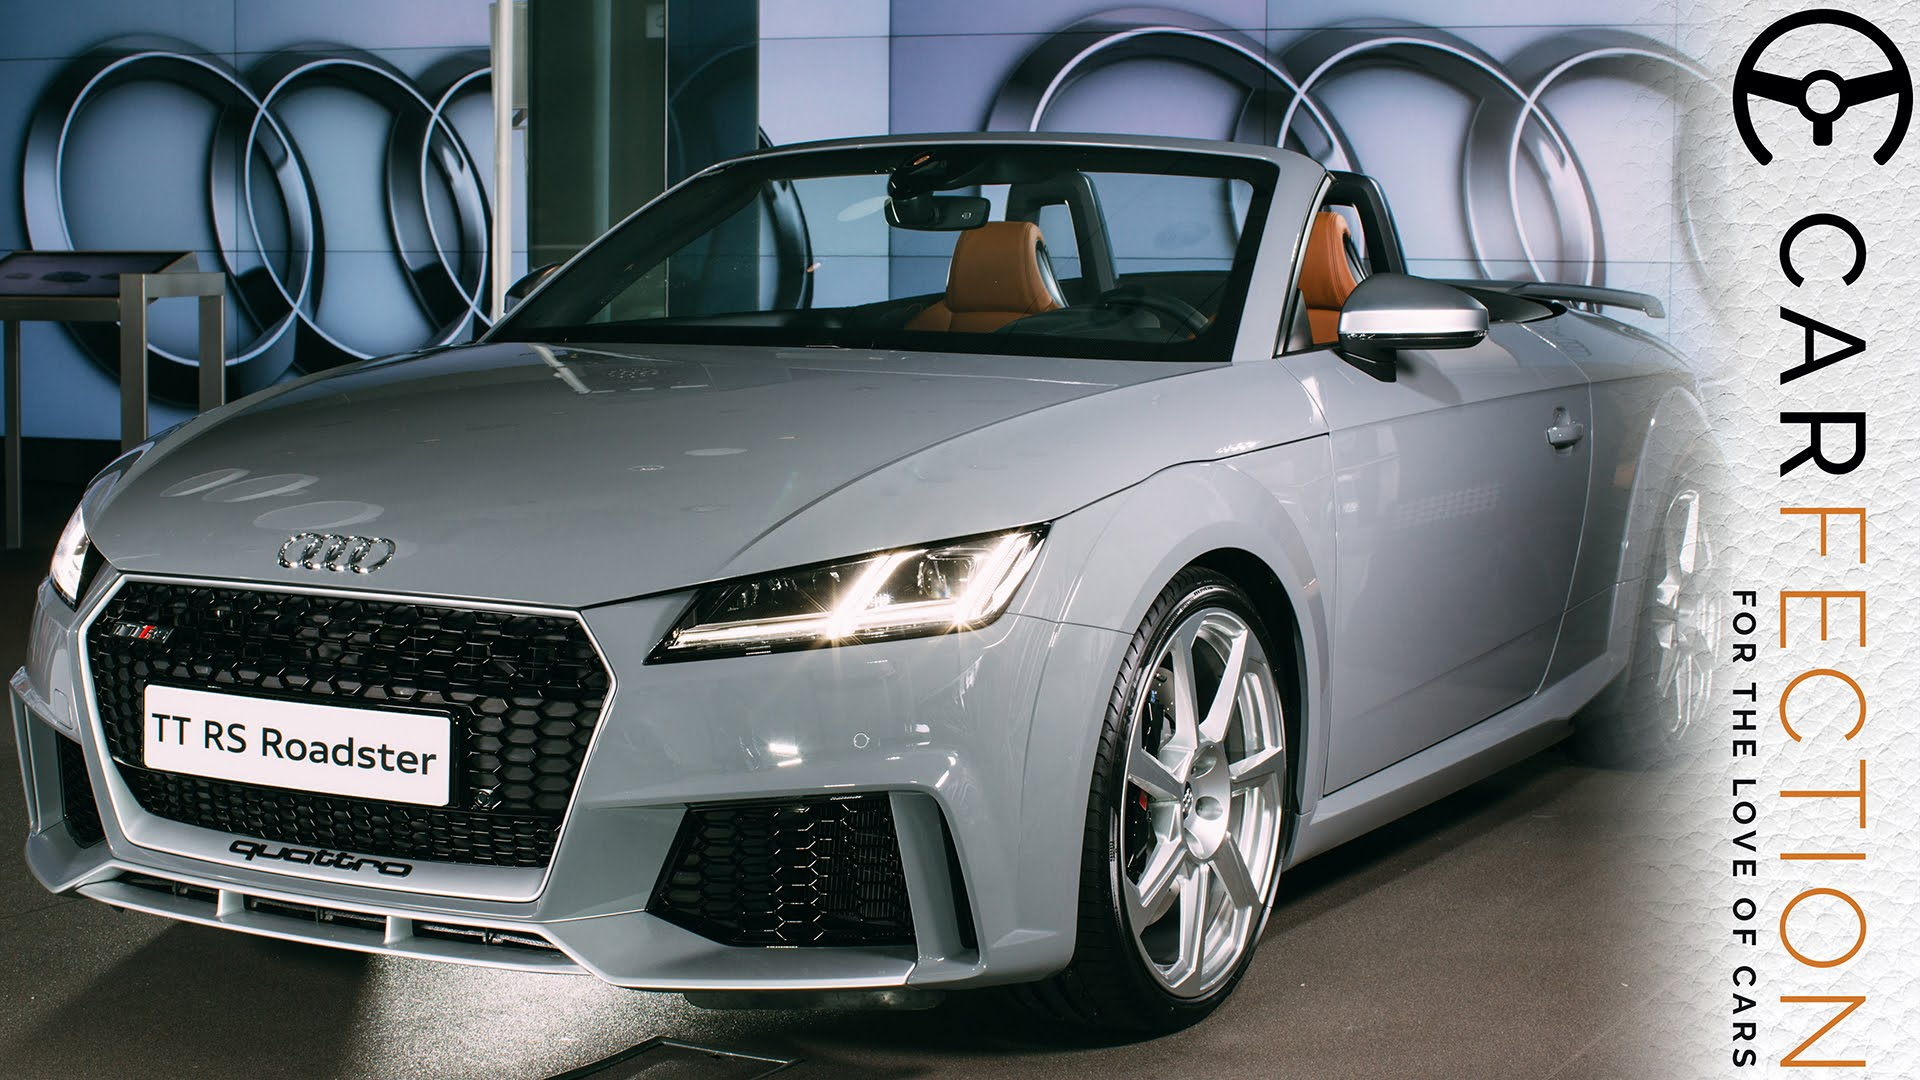 2017 Audi TT RS: More Ommph and Faster Than A Cayman